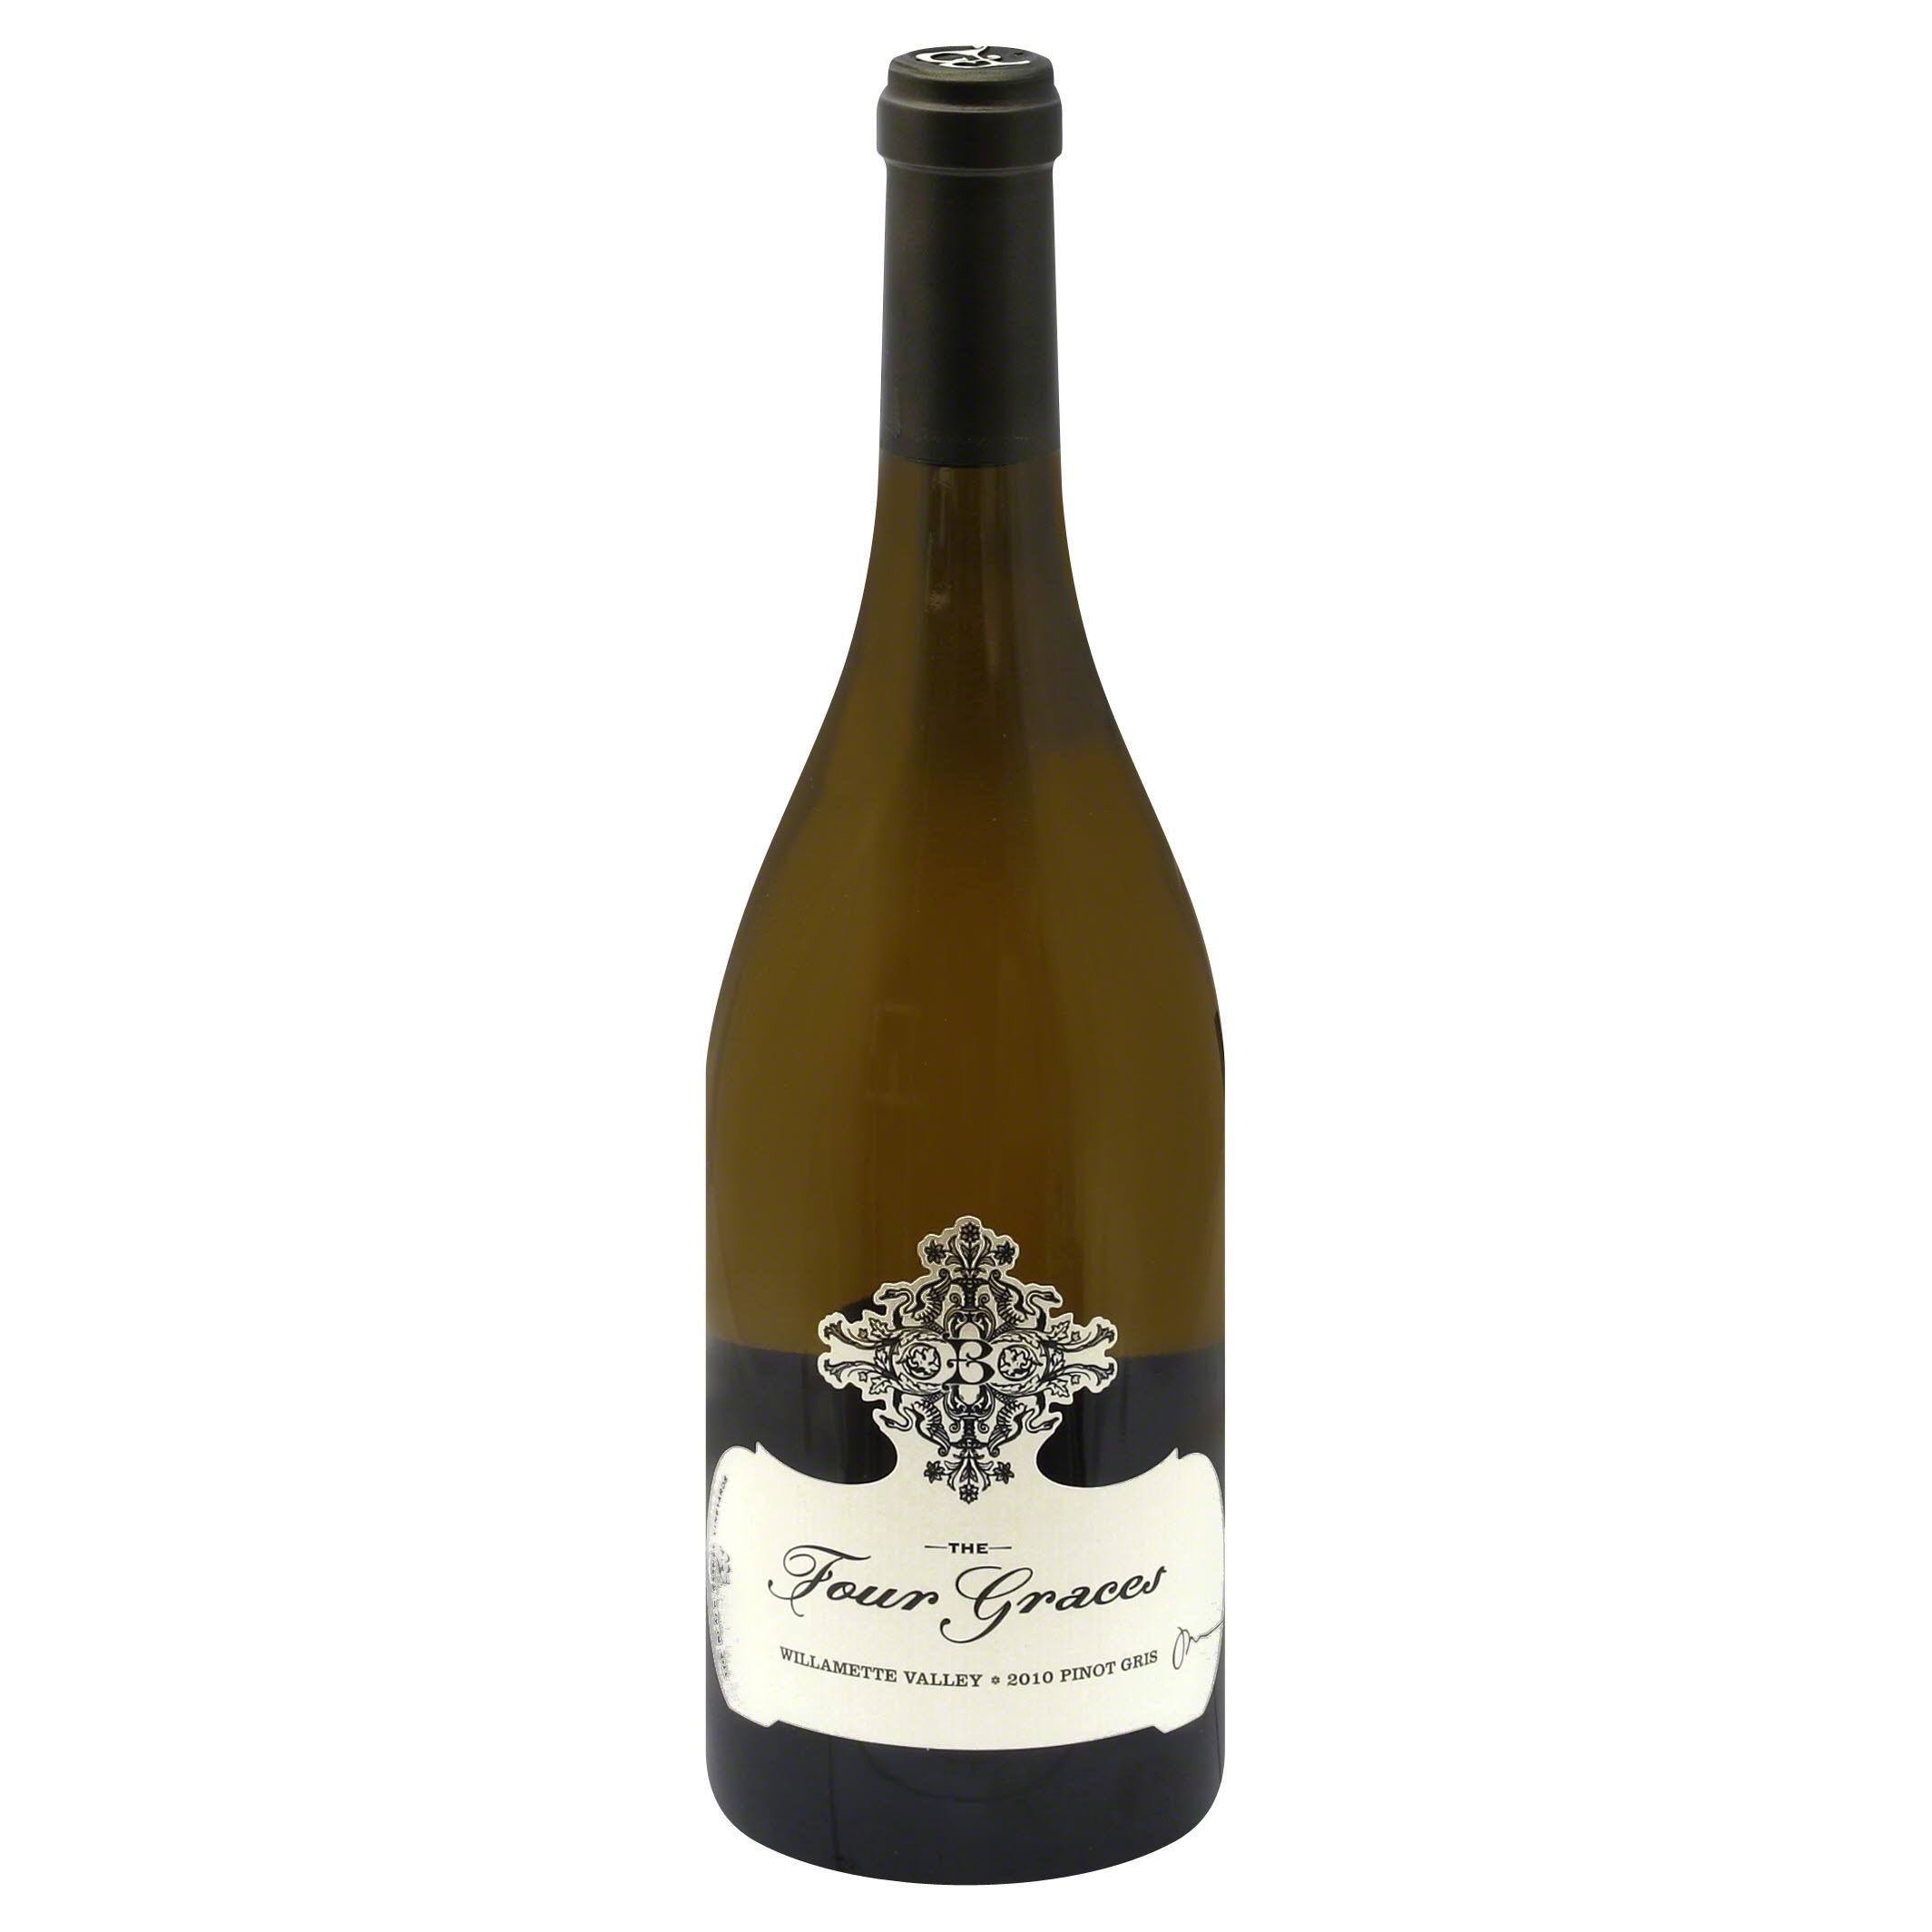 Four Graces Pinot Gris, Willamette Valley, 2010 - 750 ml